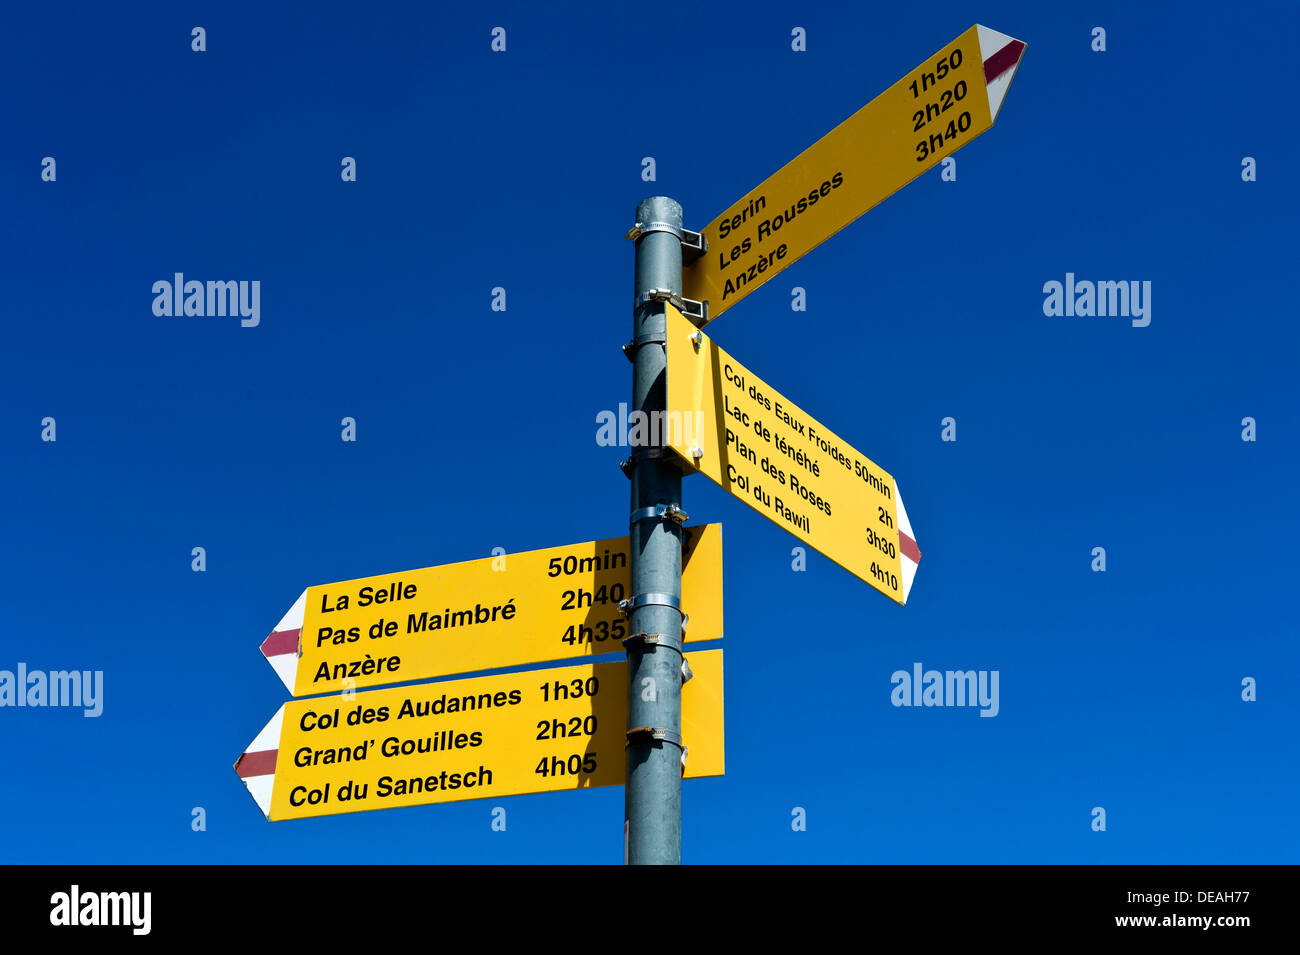 Signposts for hiking routes at the Cabane des Audannes, Bernese Alps, Canton of Valais, Switzerland - Stock Image